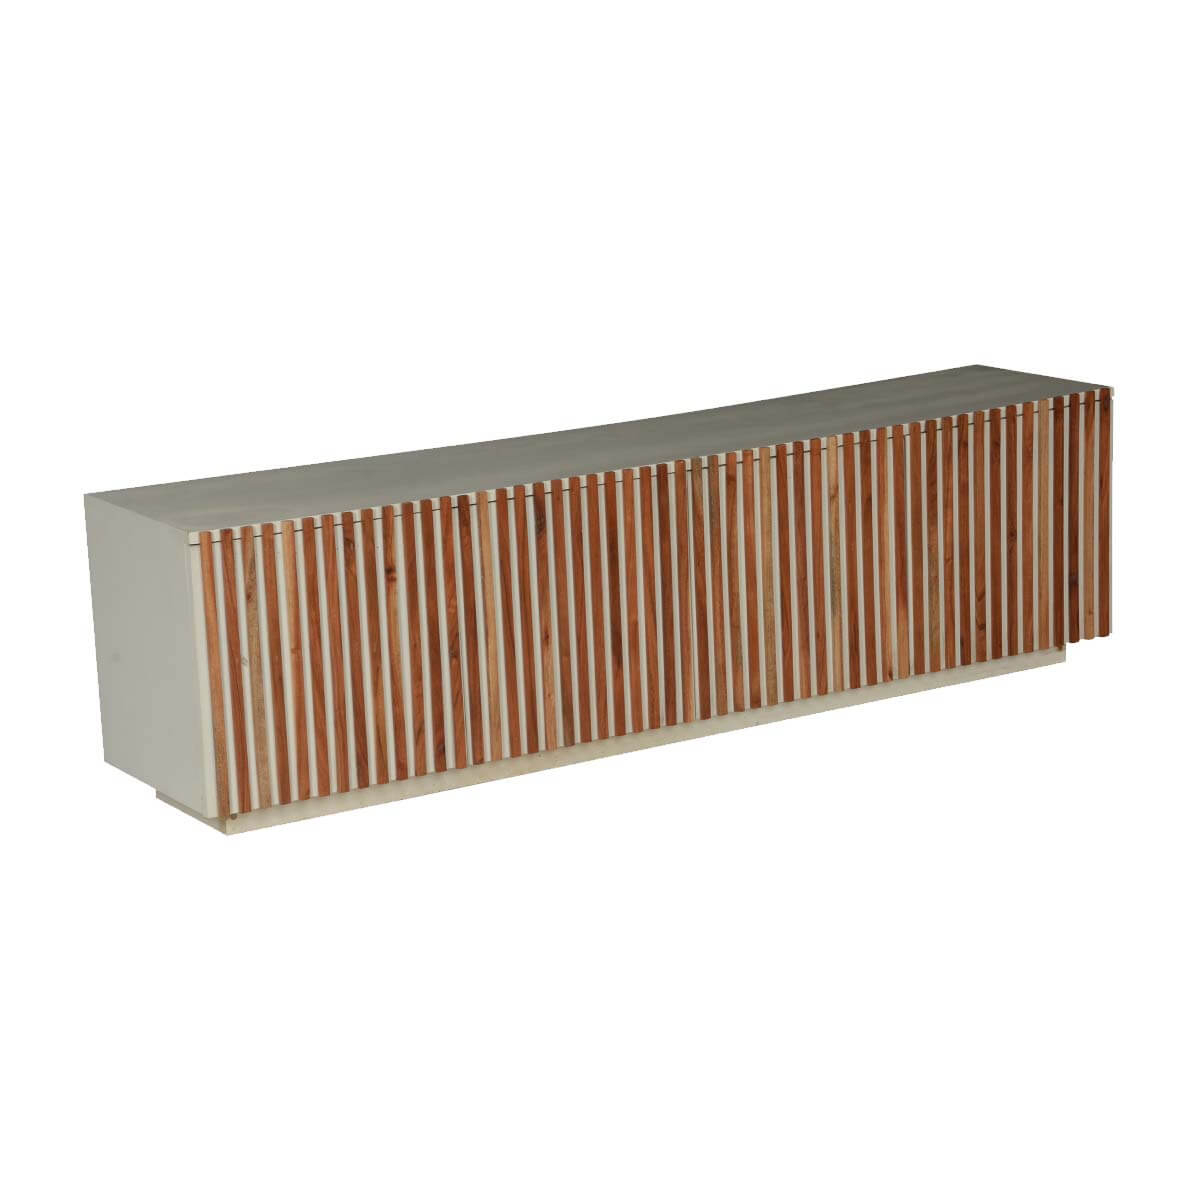 Wooden Stripes Mango Wood 4 Section Large Credenza Cabinet with regard to Multi Stripe Credenzas (Image 30 of 30)